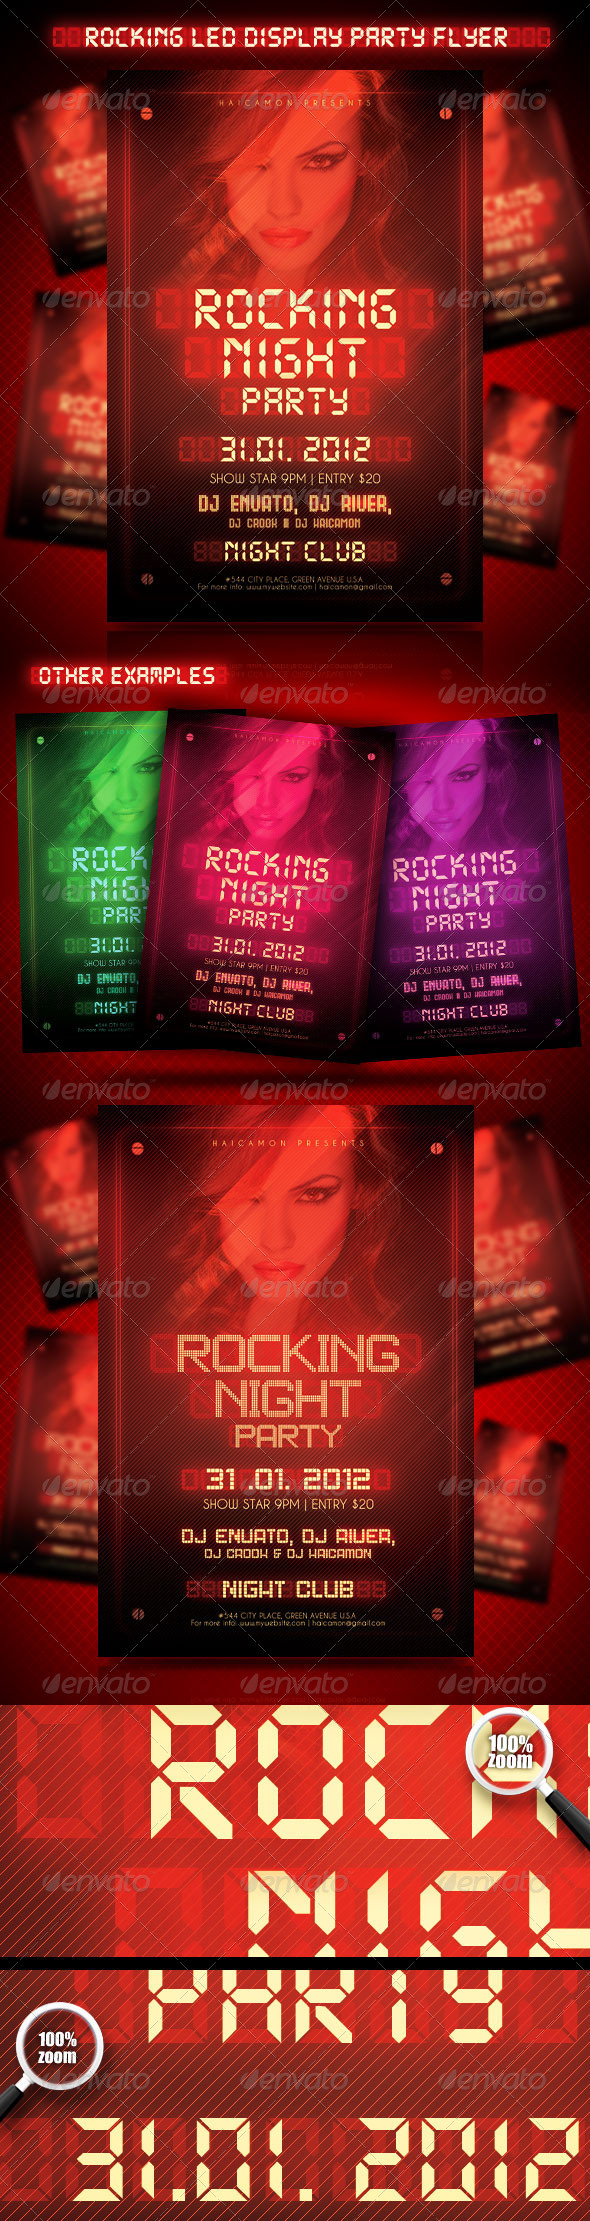 Rocking Led Display Party Flyer - Clubs & Parties Events